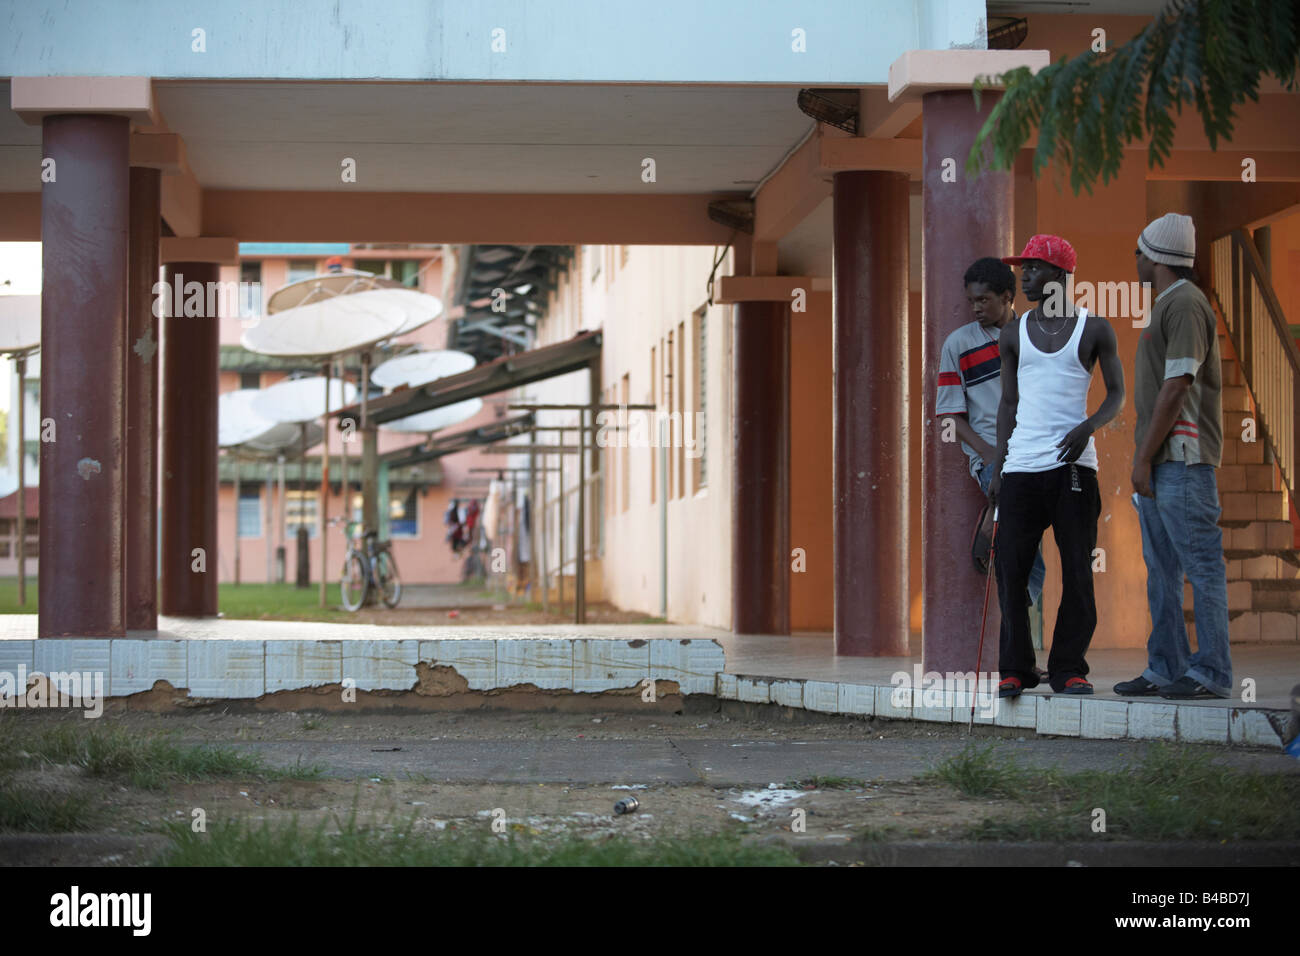 young-men-in-a-ghetto-housing-estate-in-